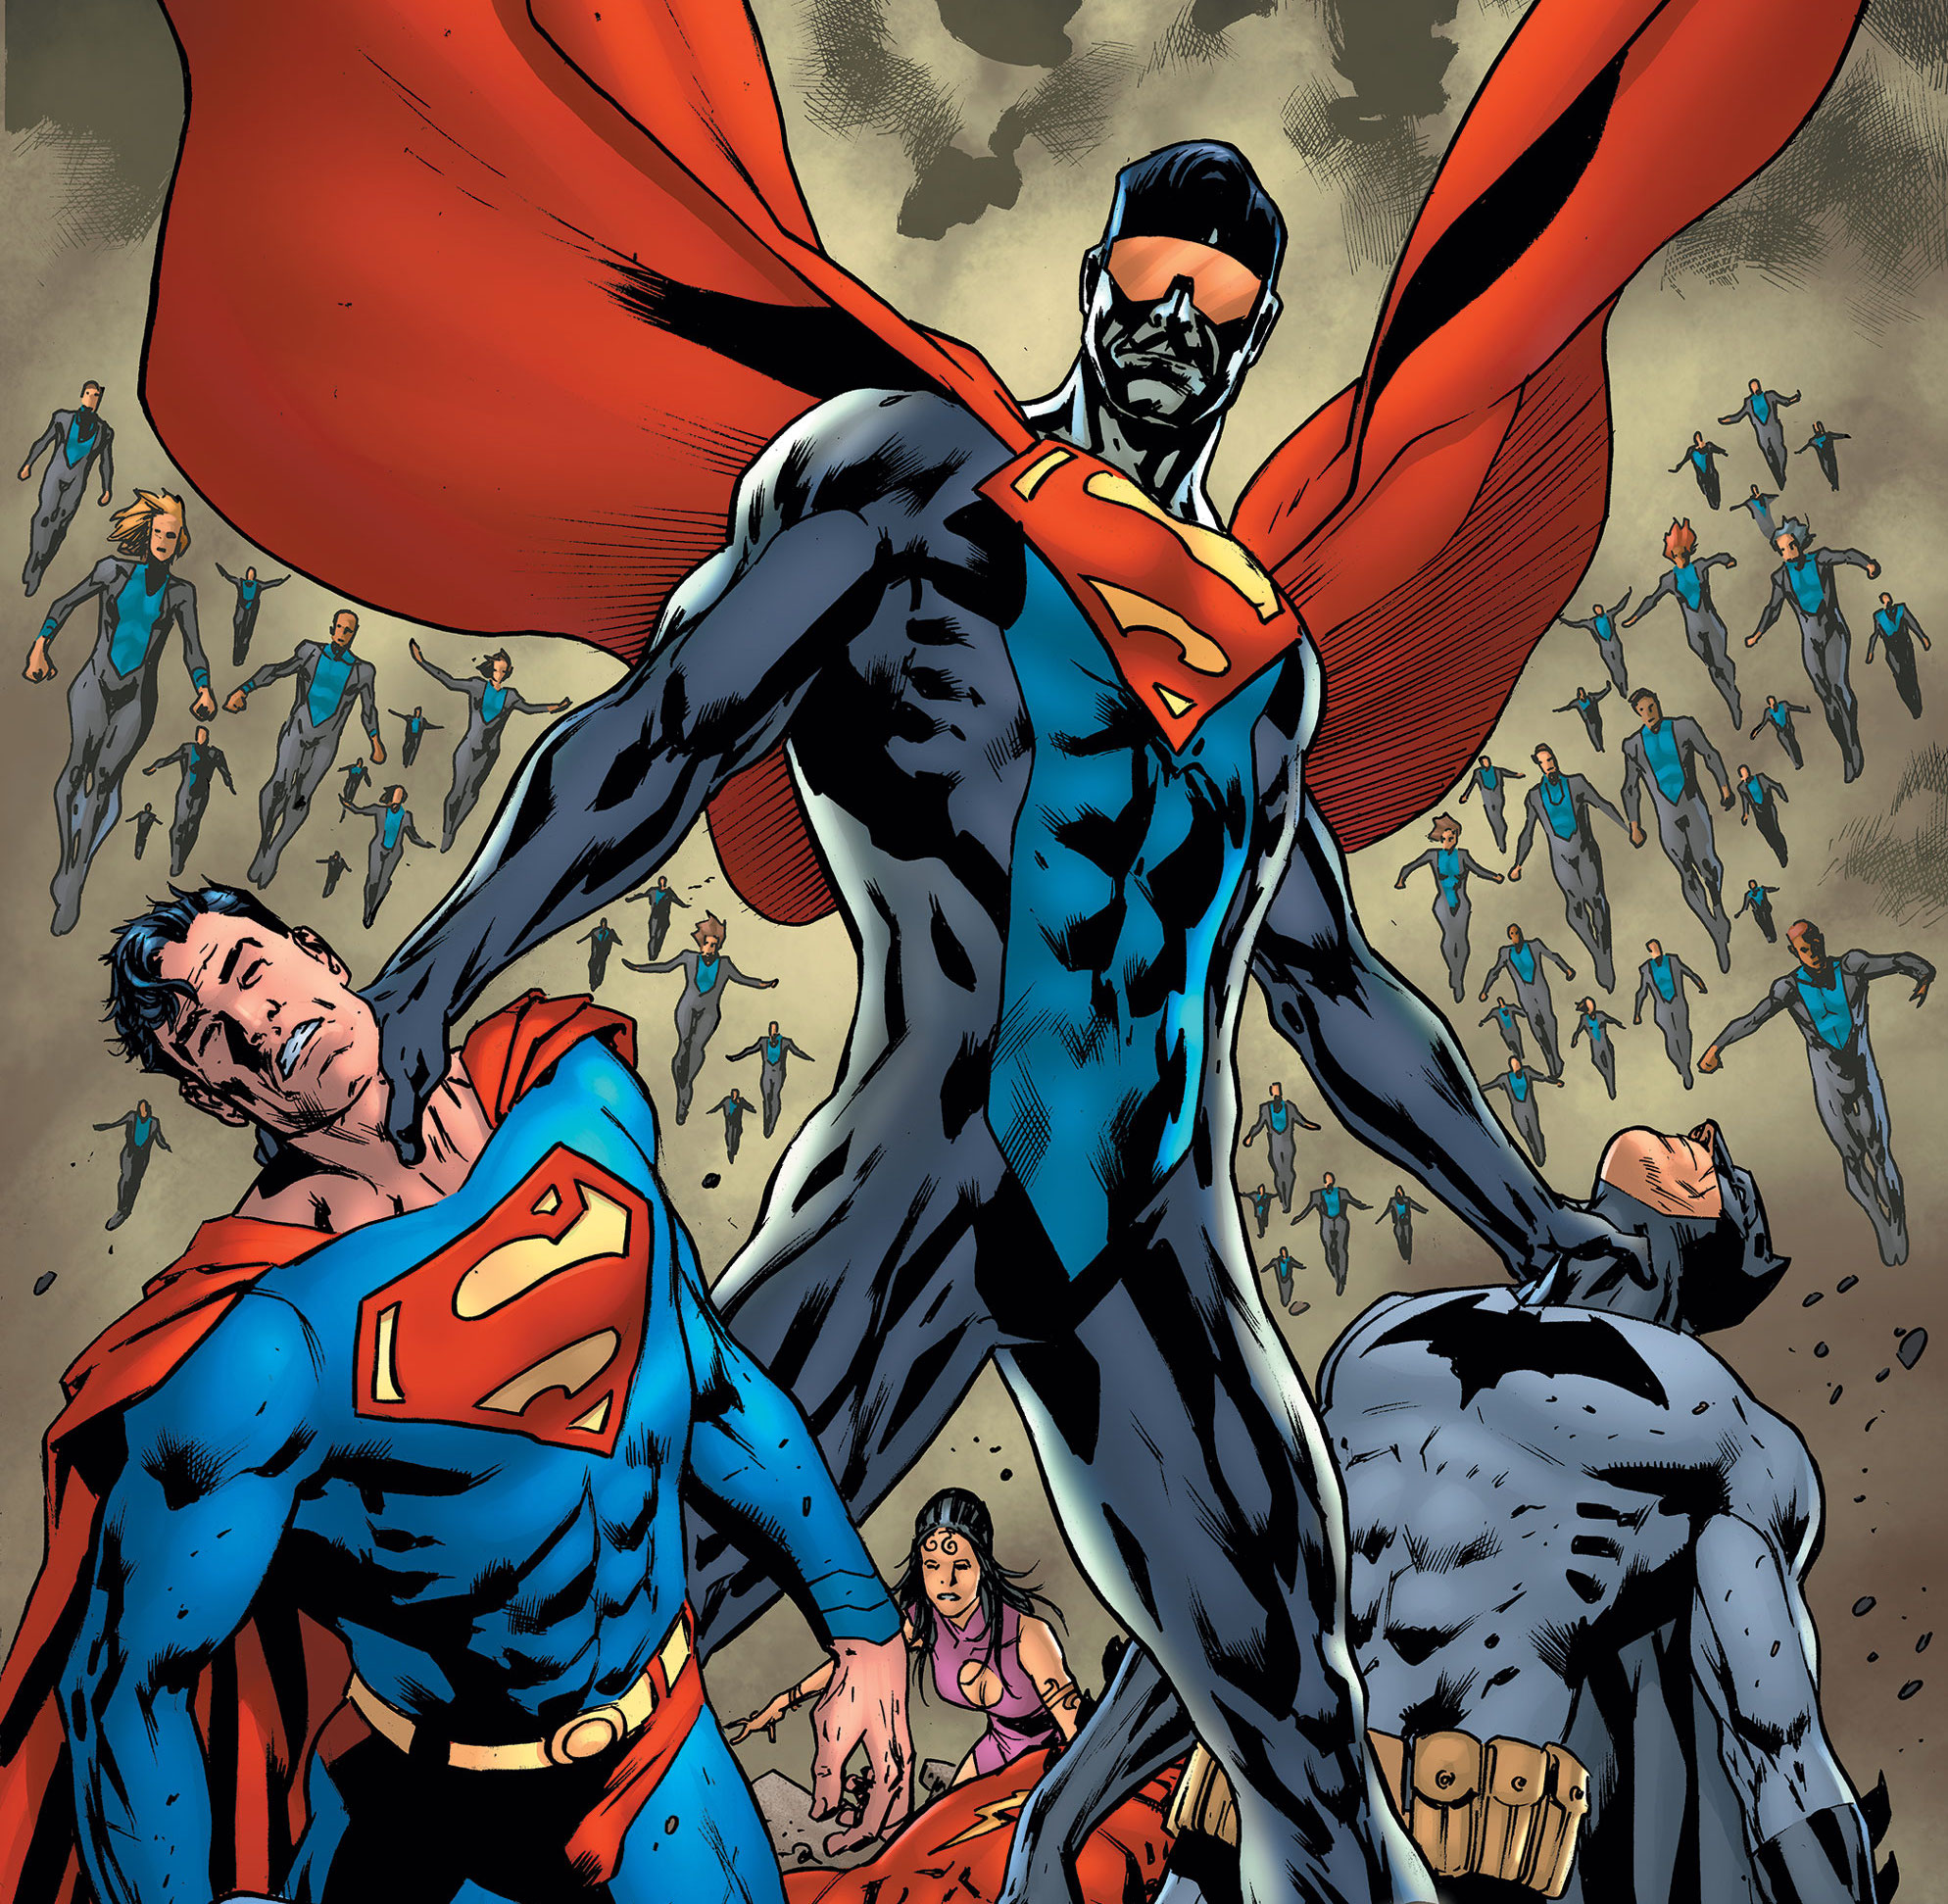 The Eradicator and His Supermen Continue their Assault on the Justice League!